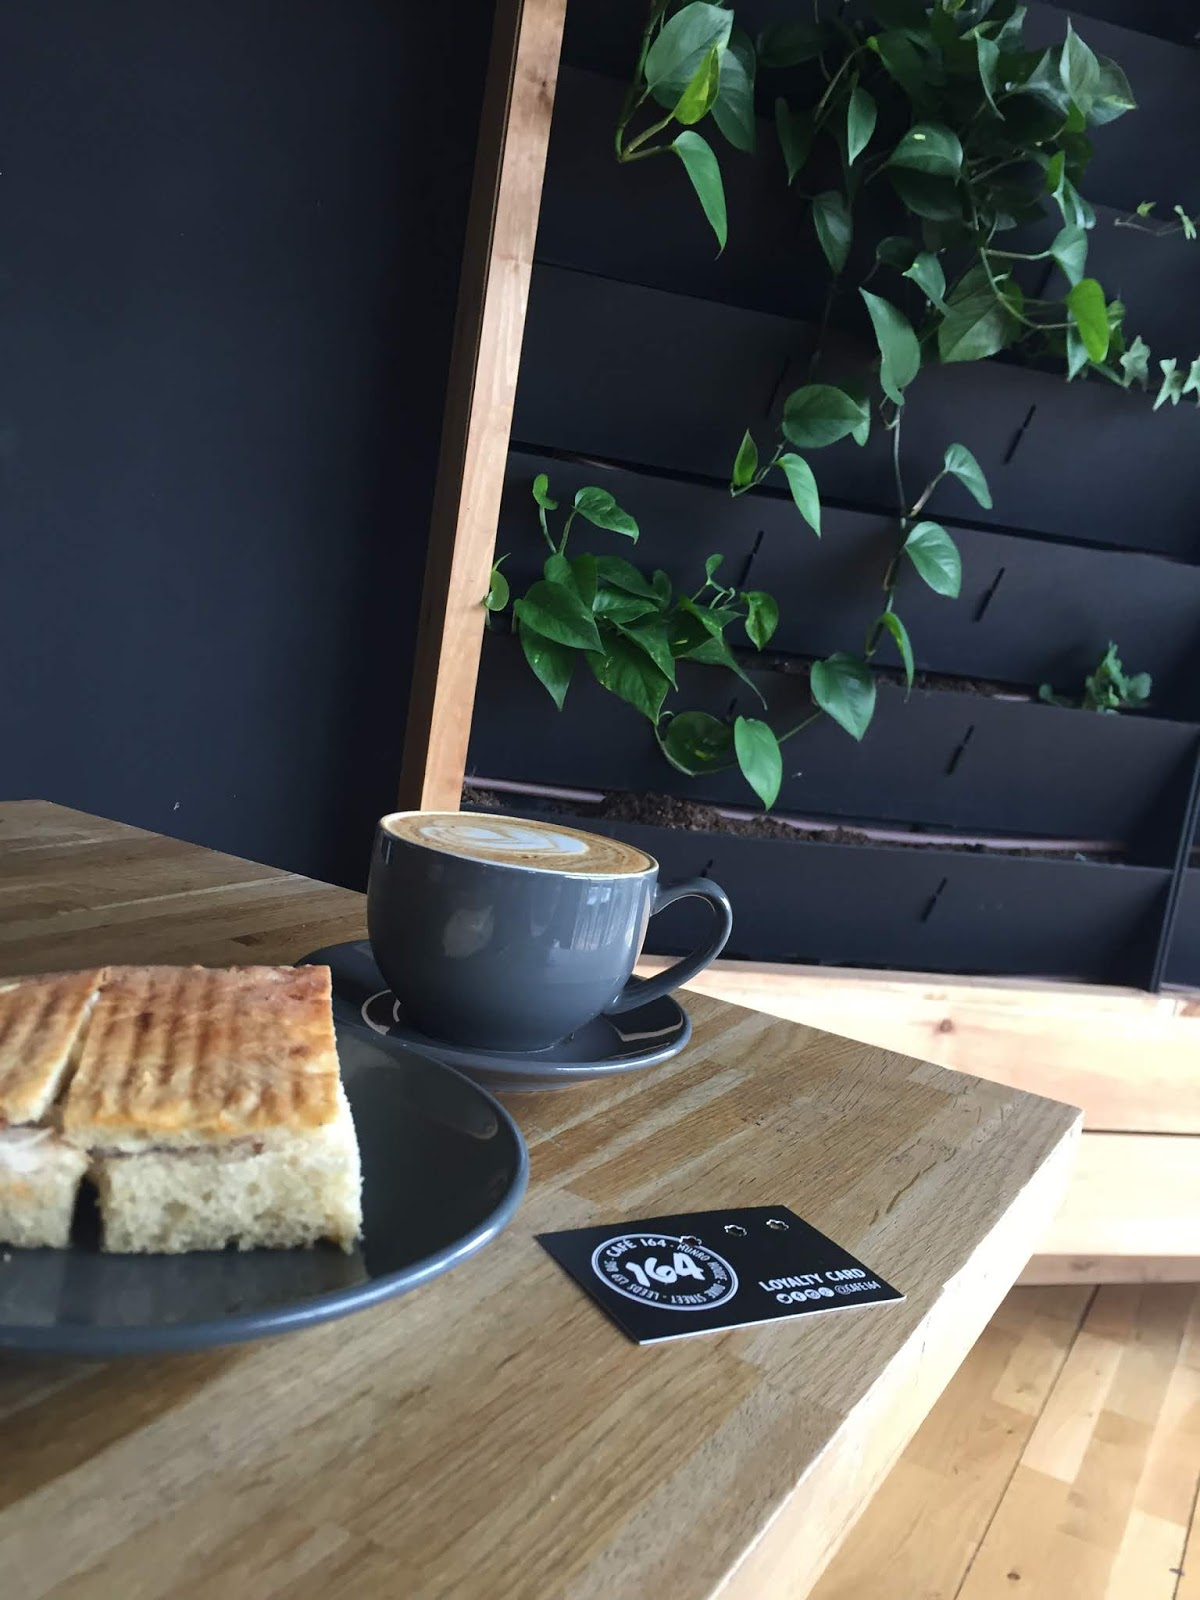 plants and coffee at cafe 164 in Leeds